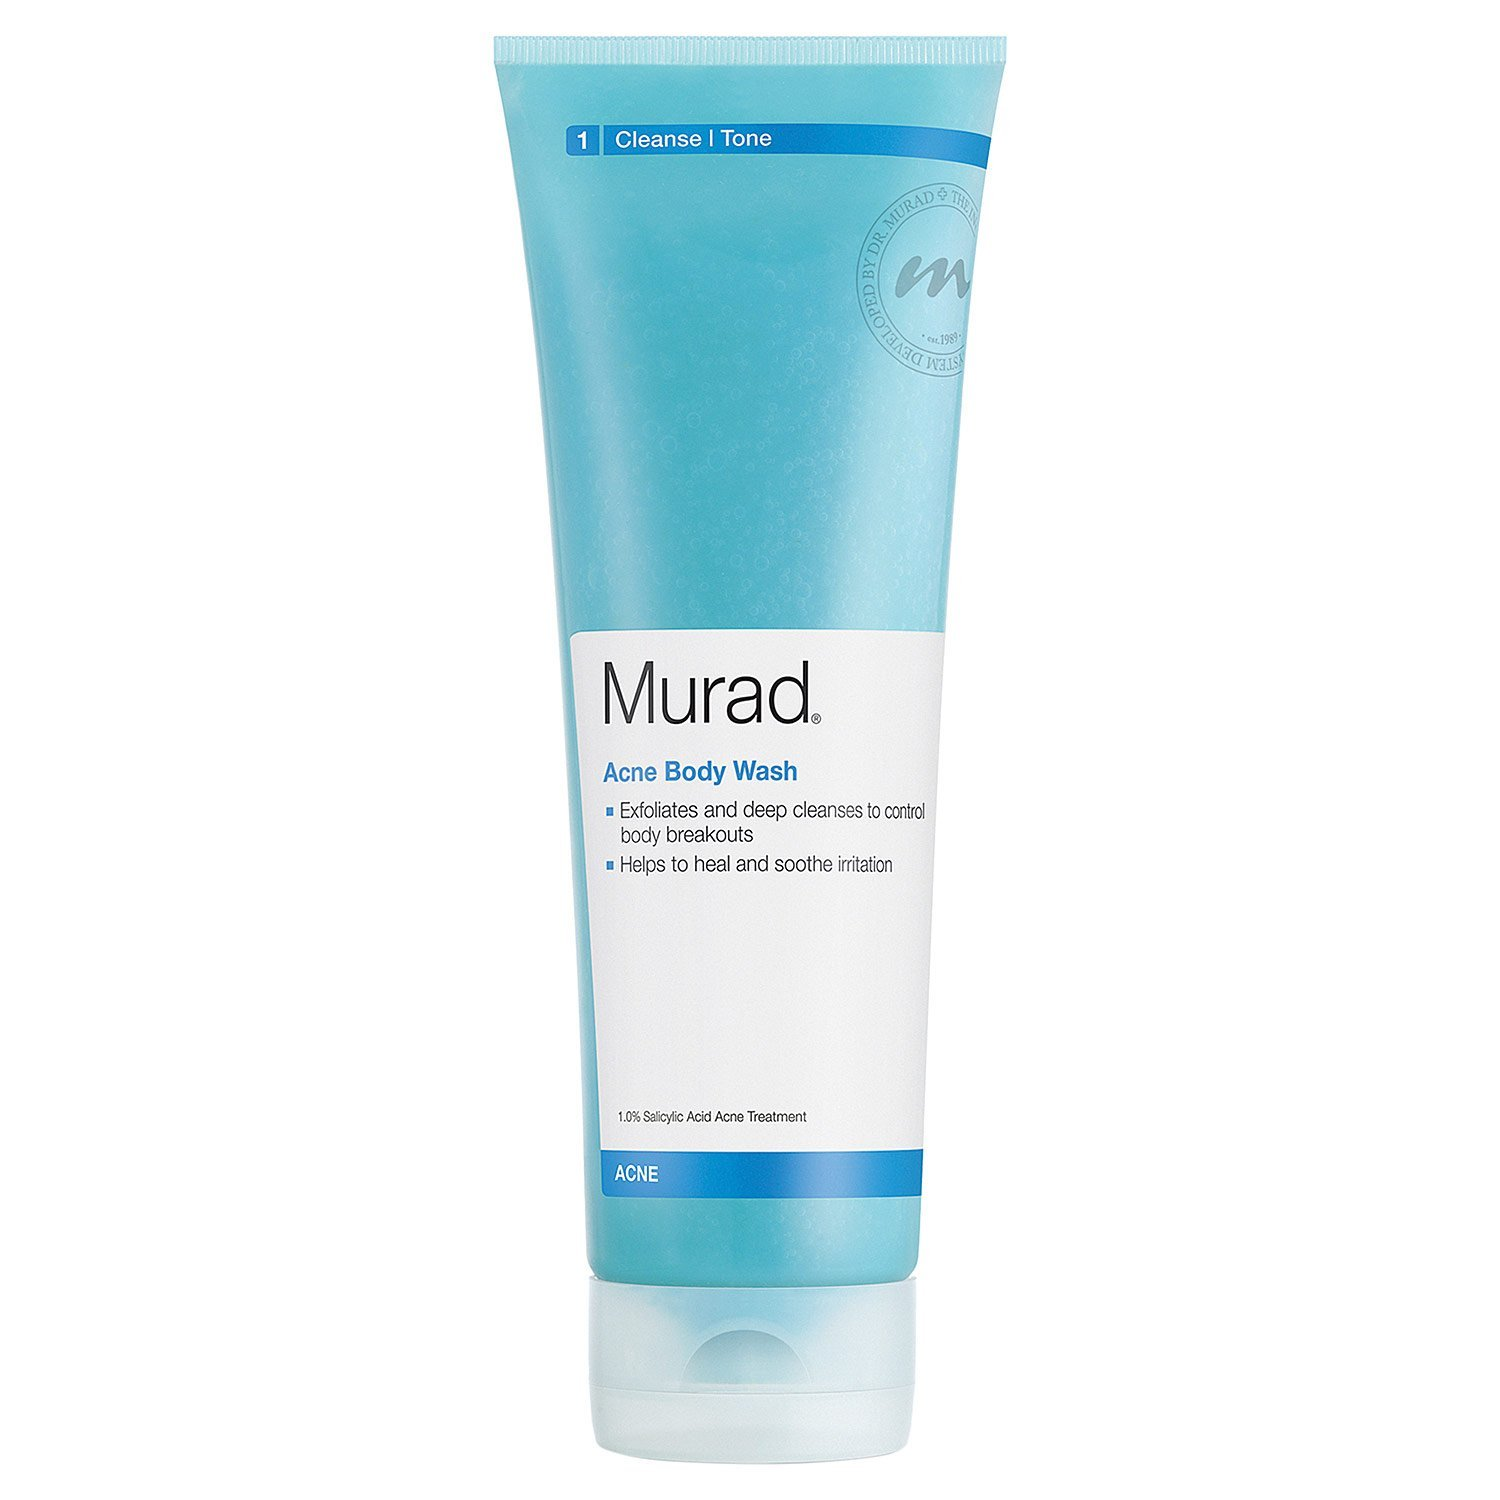 Murad Acne Body Wash with Salicylic Acid